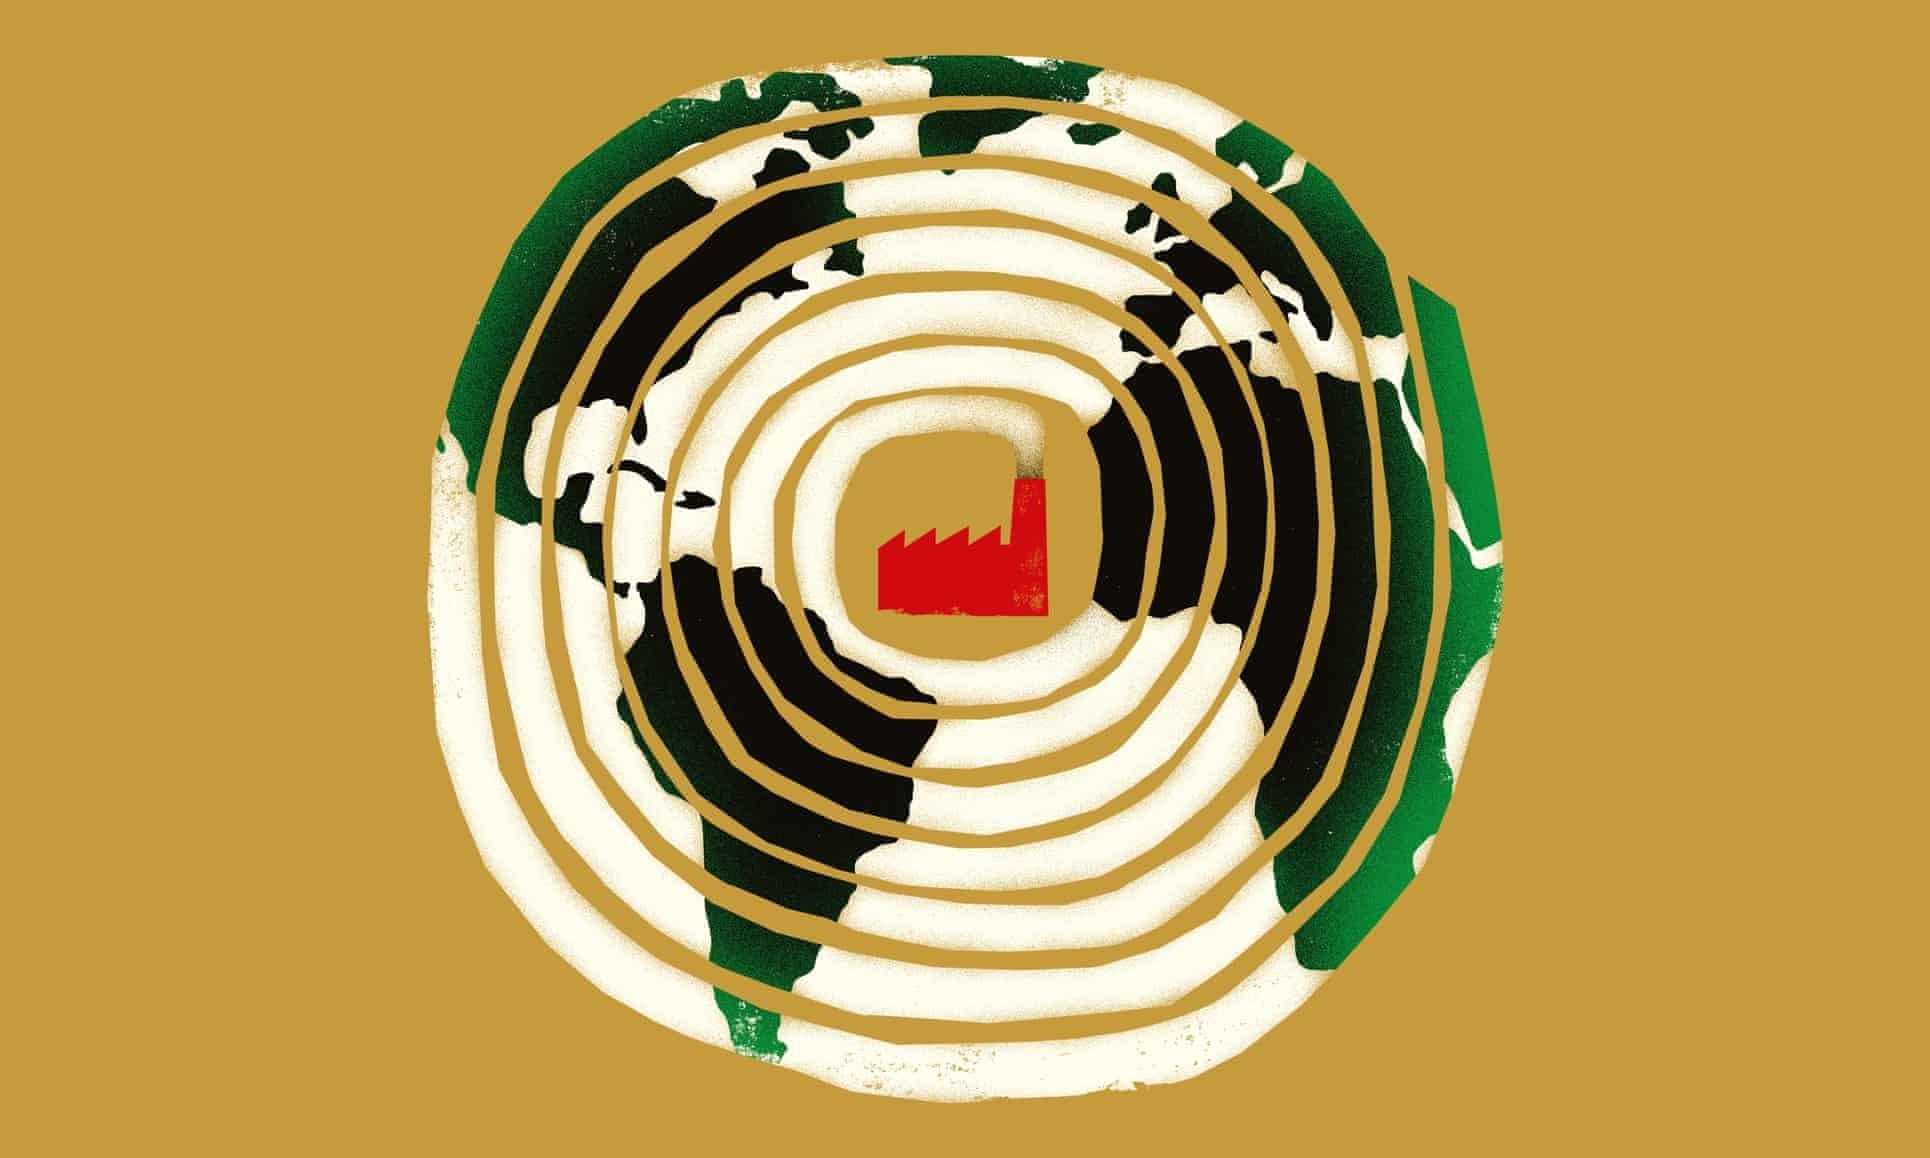 A record number of companies are making climate pledges, but experts say action remains far too slow. Illustration: The Project Twins/The Guardian